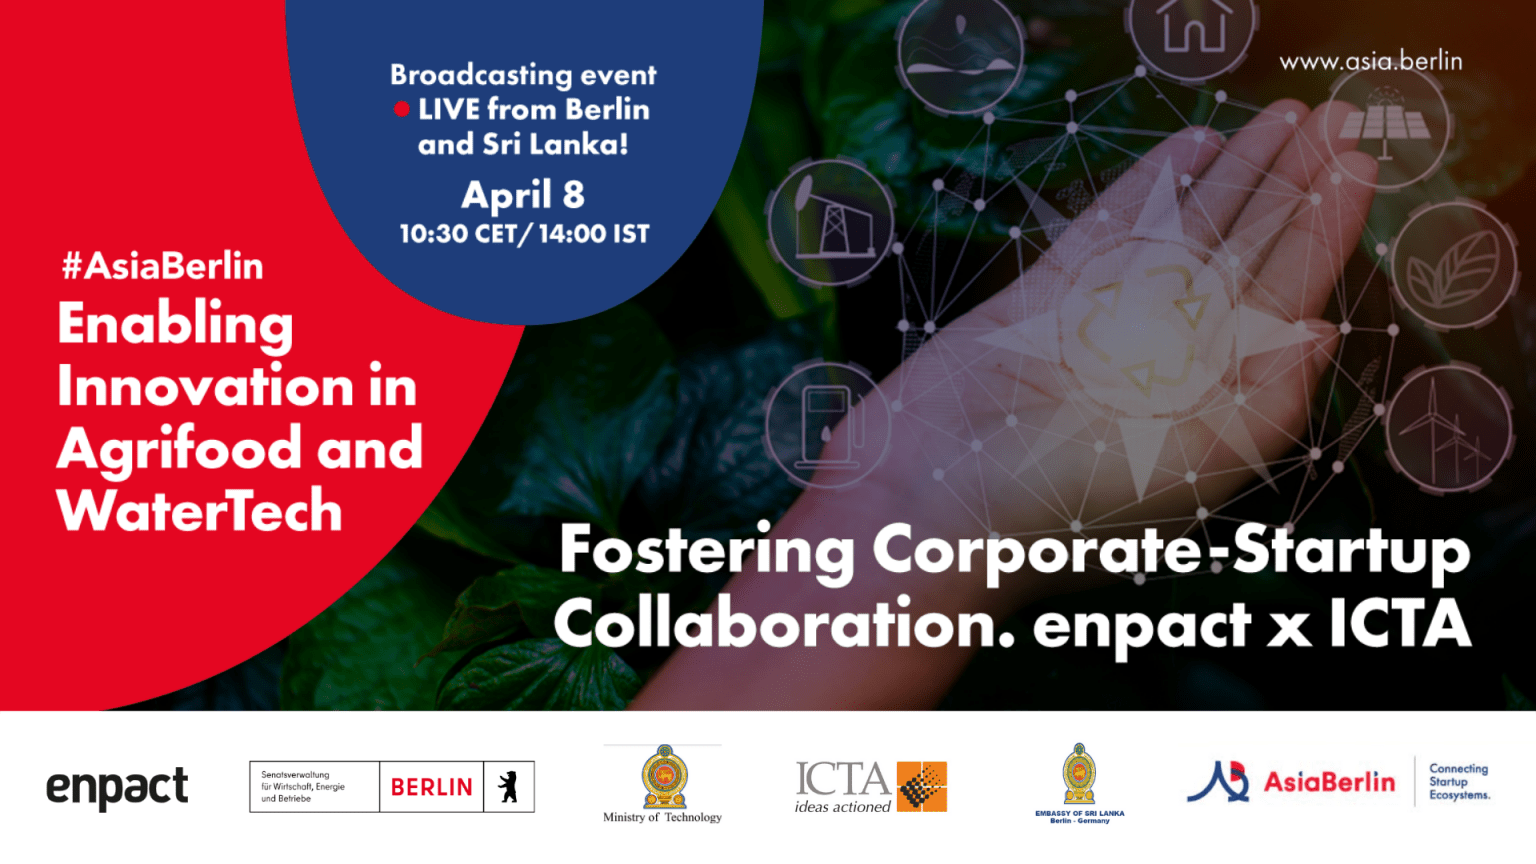 Join us for our next AsiaBerlin Event: International Innovation and Collaboration in Agrifood and WaterTech on 8 April